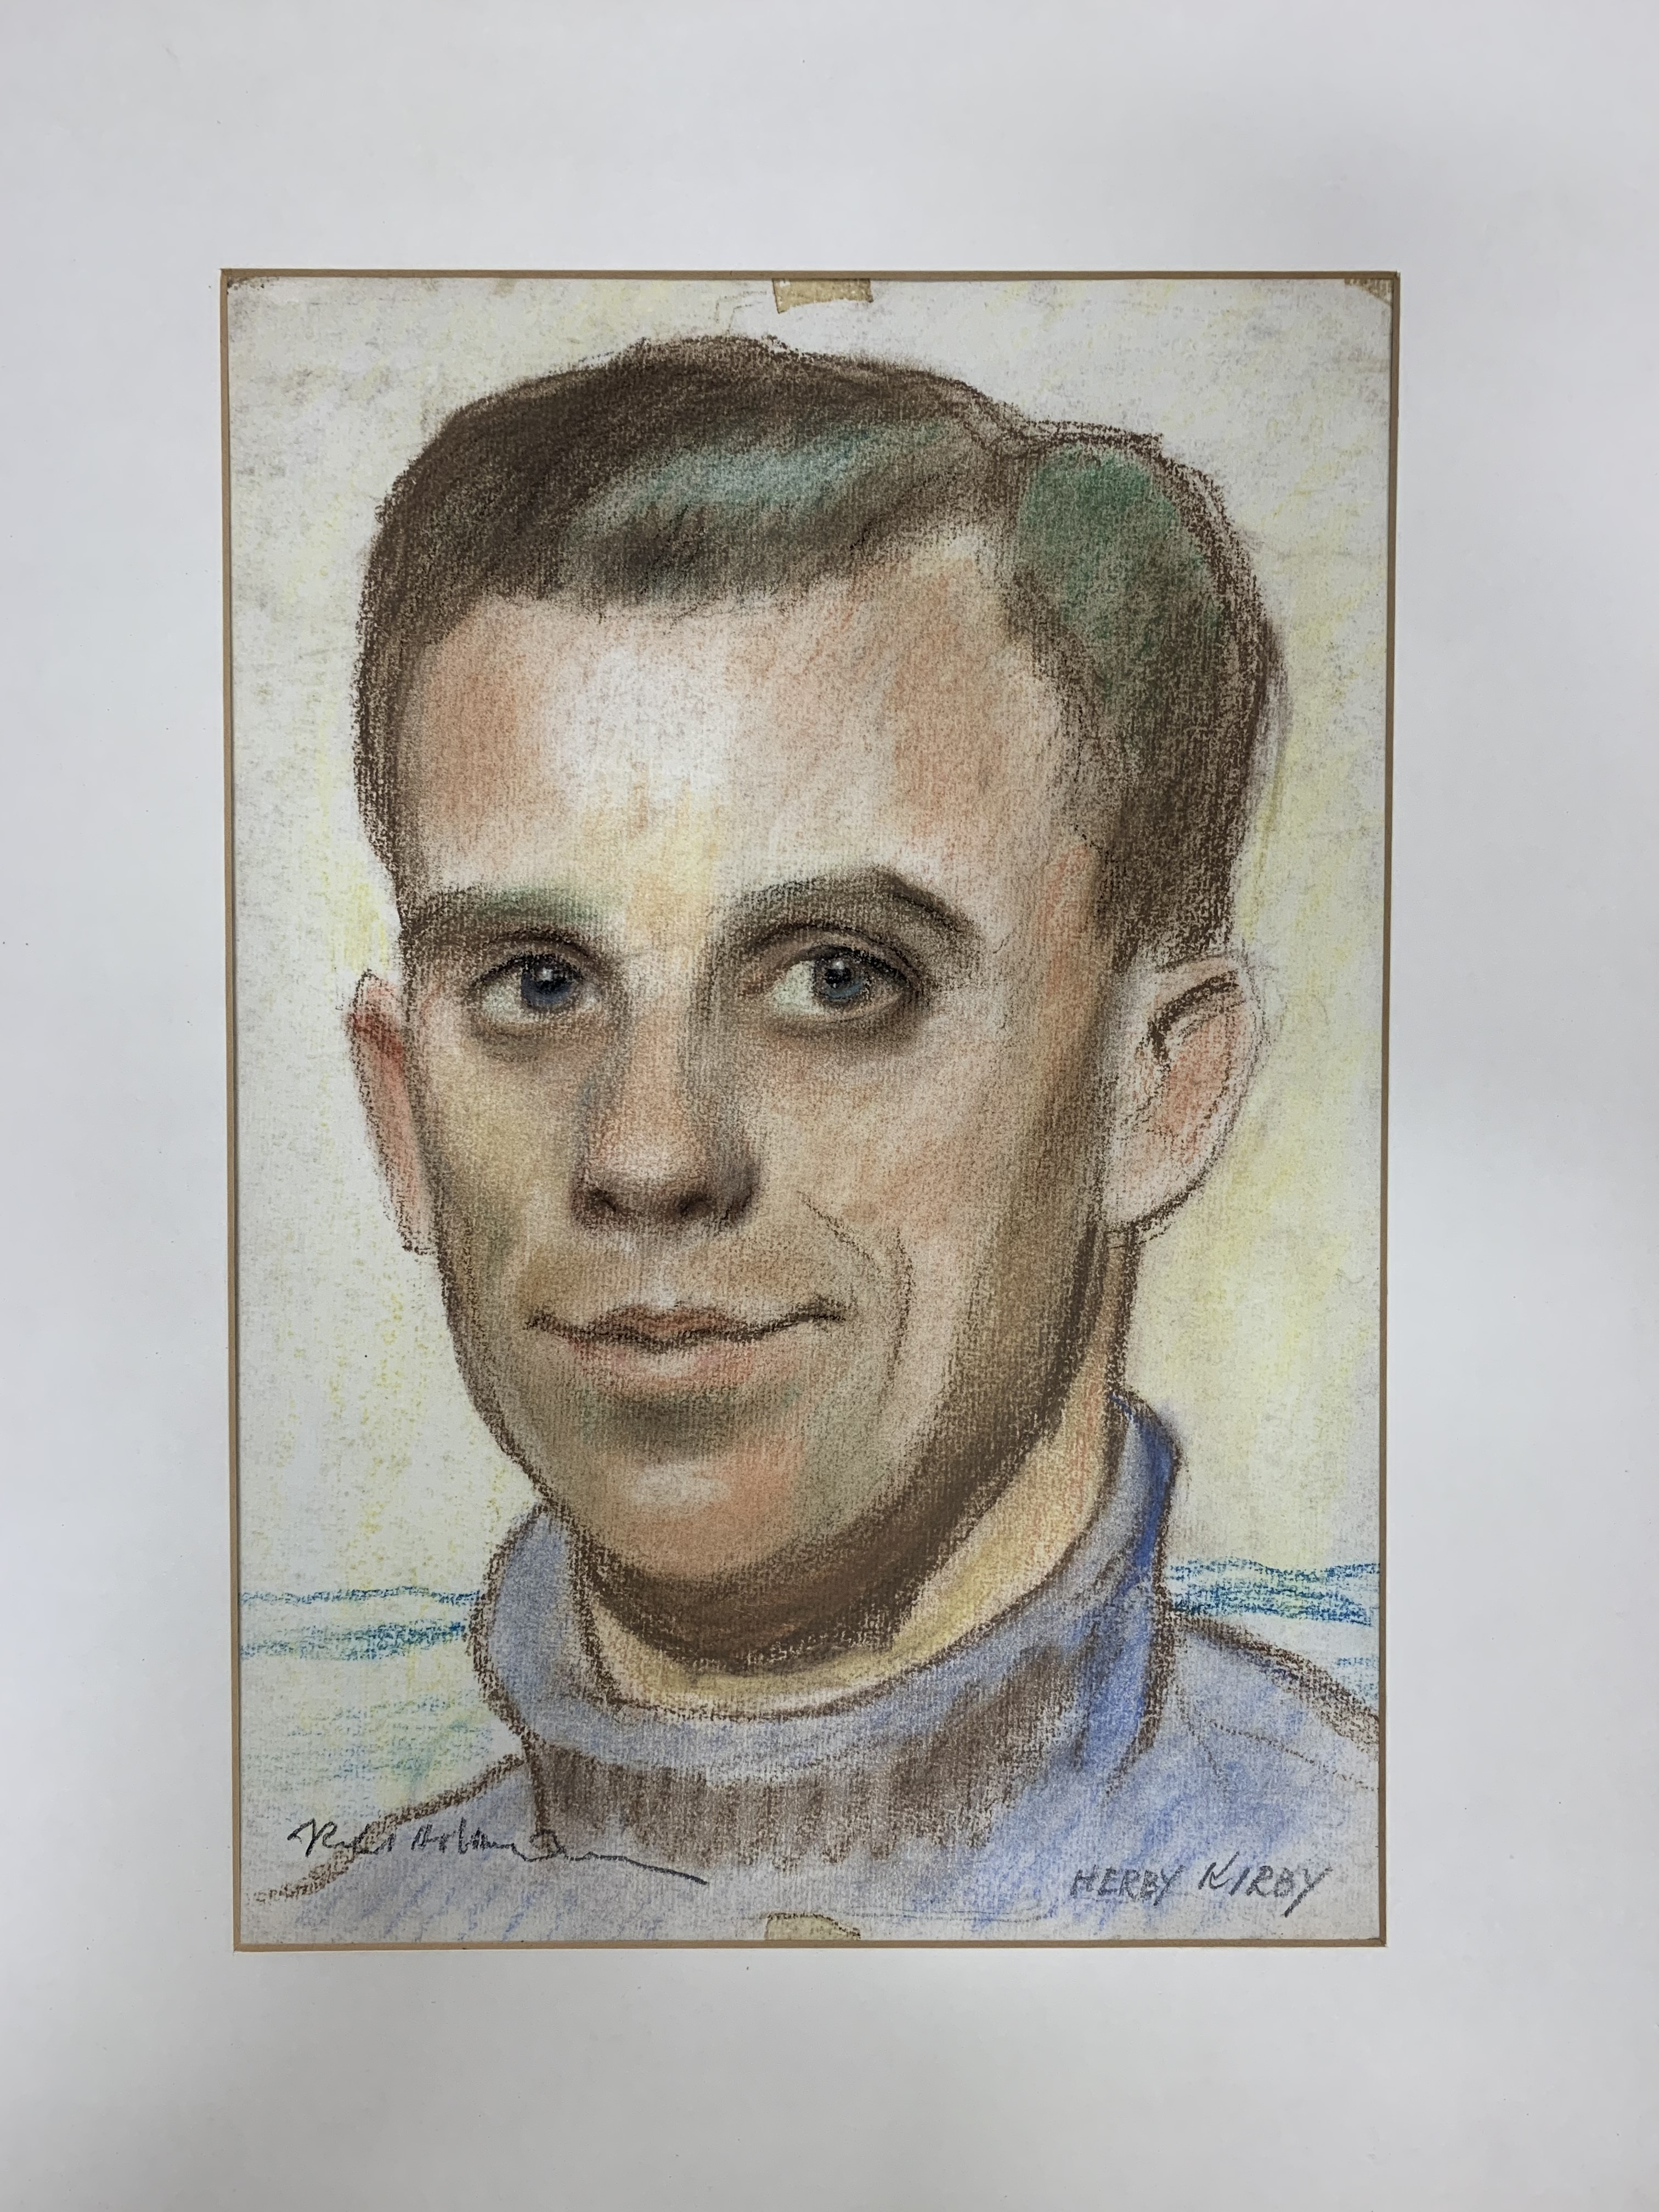 Drawing of Herby Kirby by Robert Hofmann from the 1960s